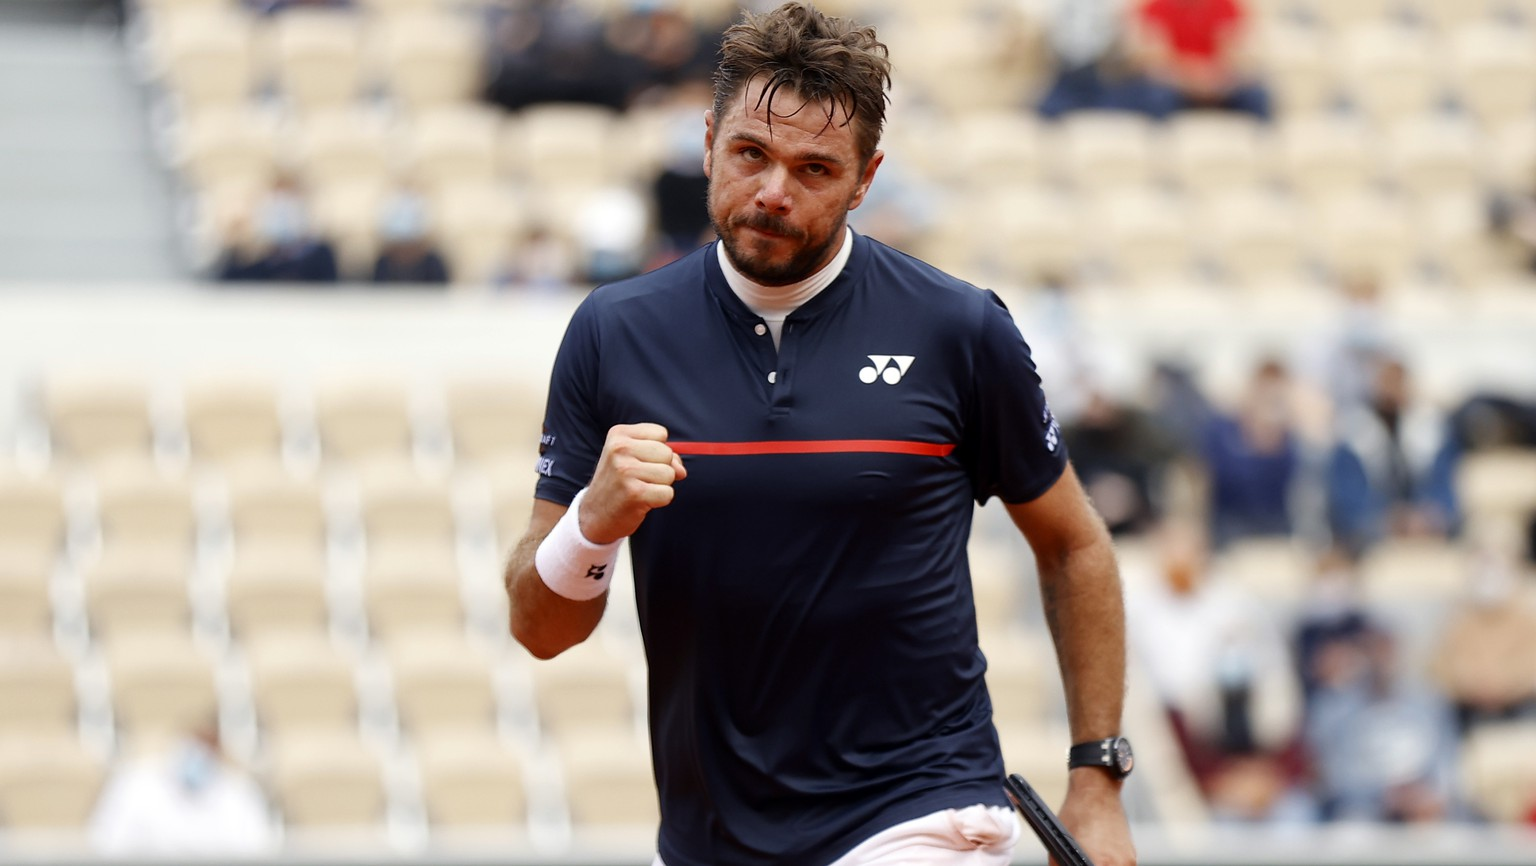 epa08708190 Stan Wawrinka of Switzerland reacts as he plays Dominik Koepfer of Germany during their men?s second round match during the French Open tennis tournament at Roland ?Garros in Paris, France, 30 September 2020.  EPA/IAN LANGSDON